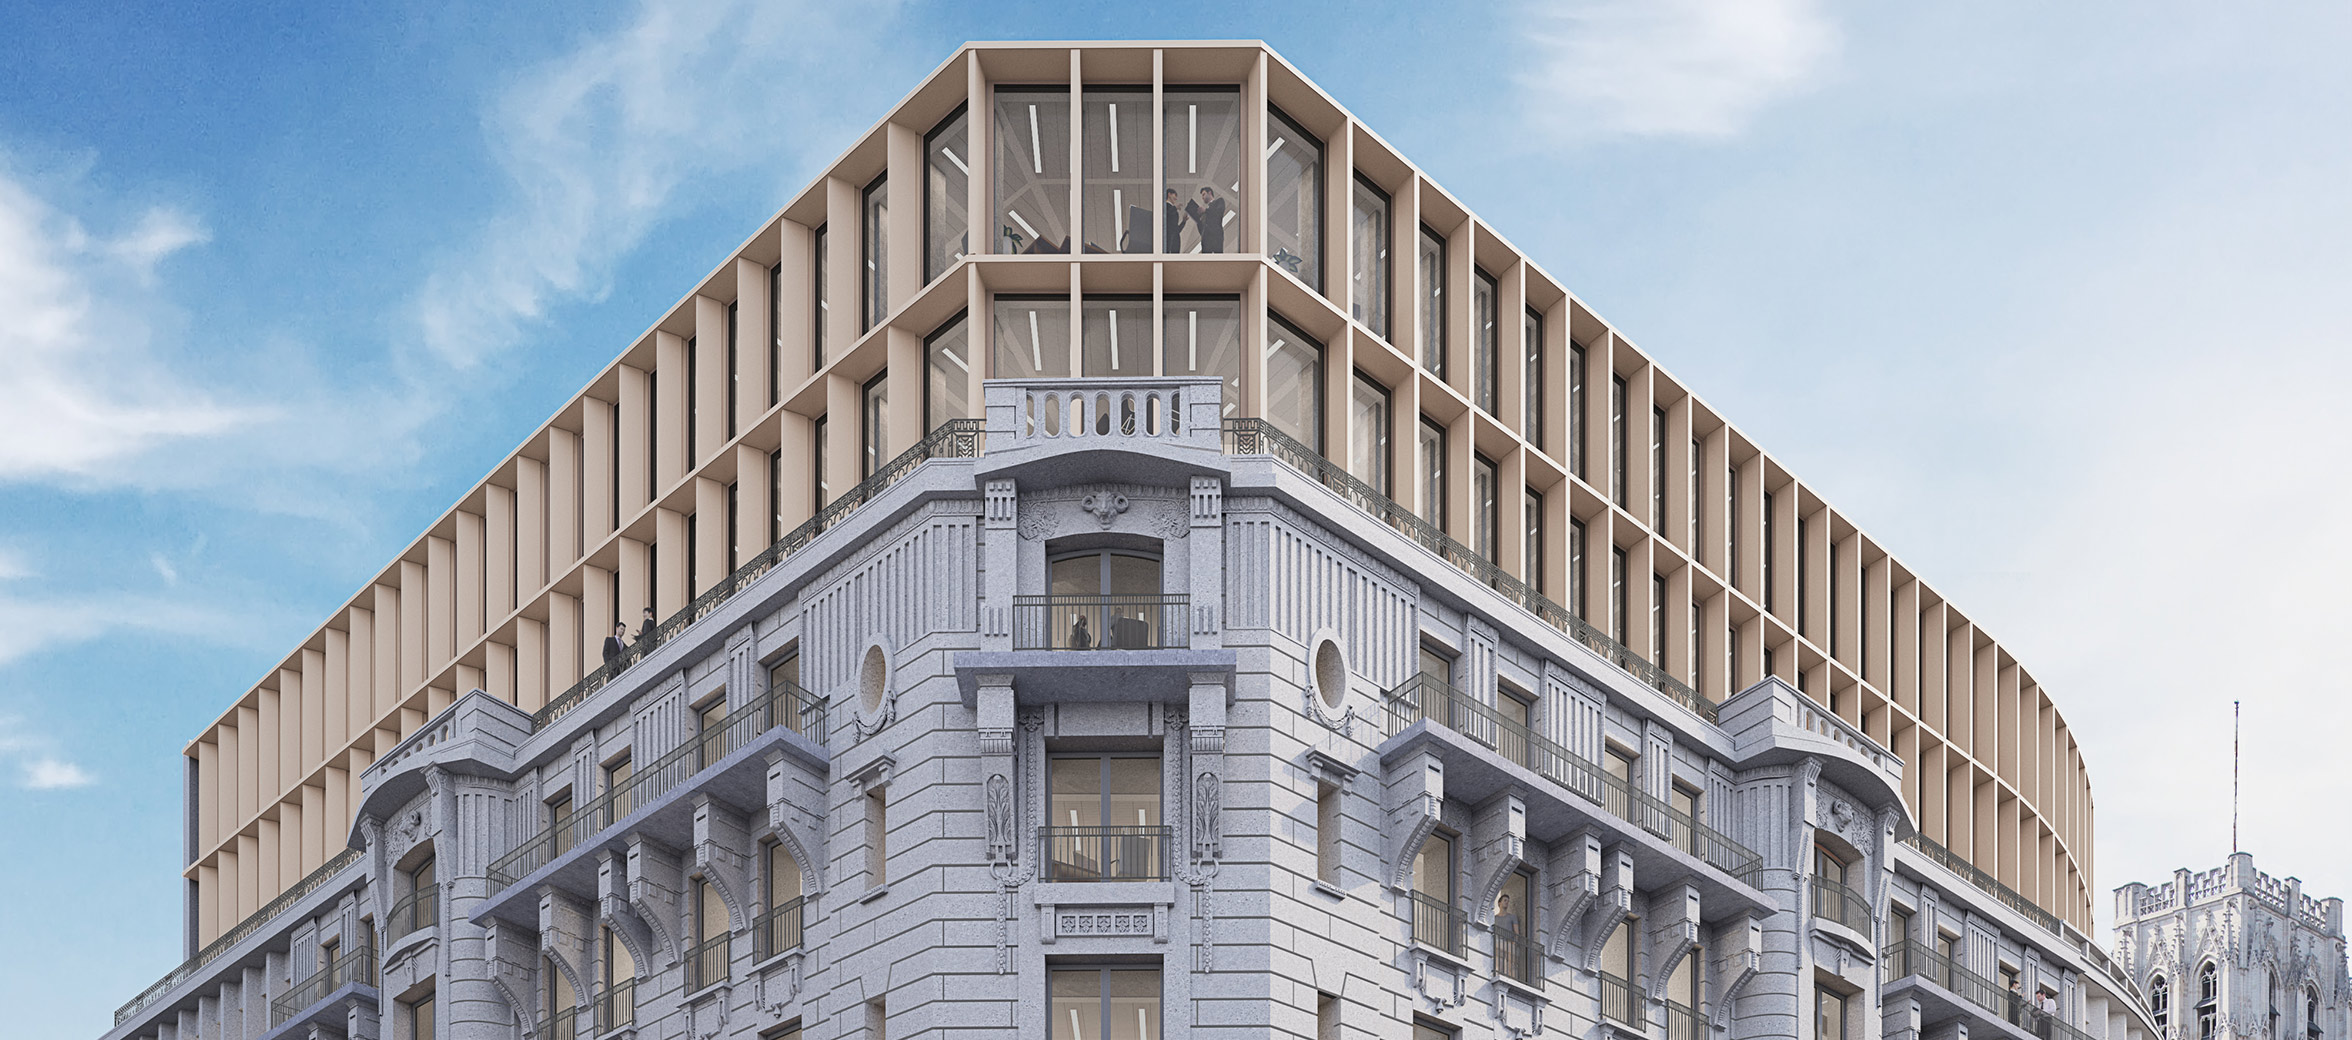 Chancellerie project in Brussels